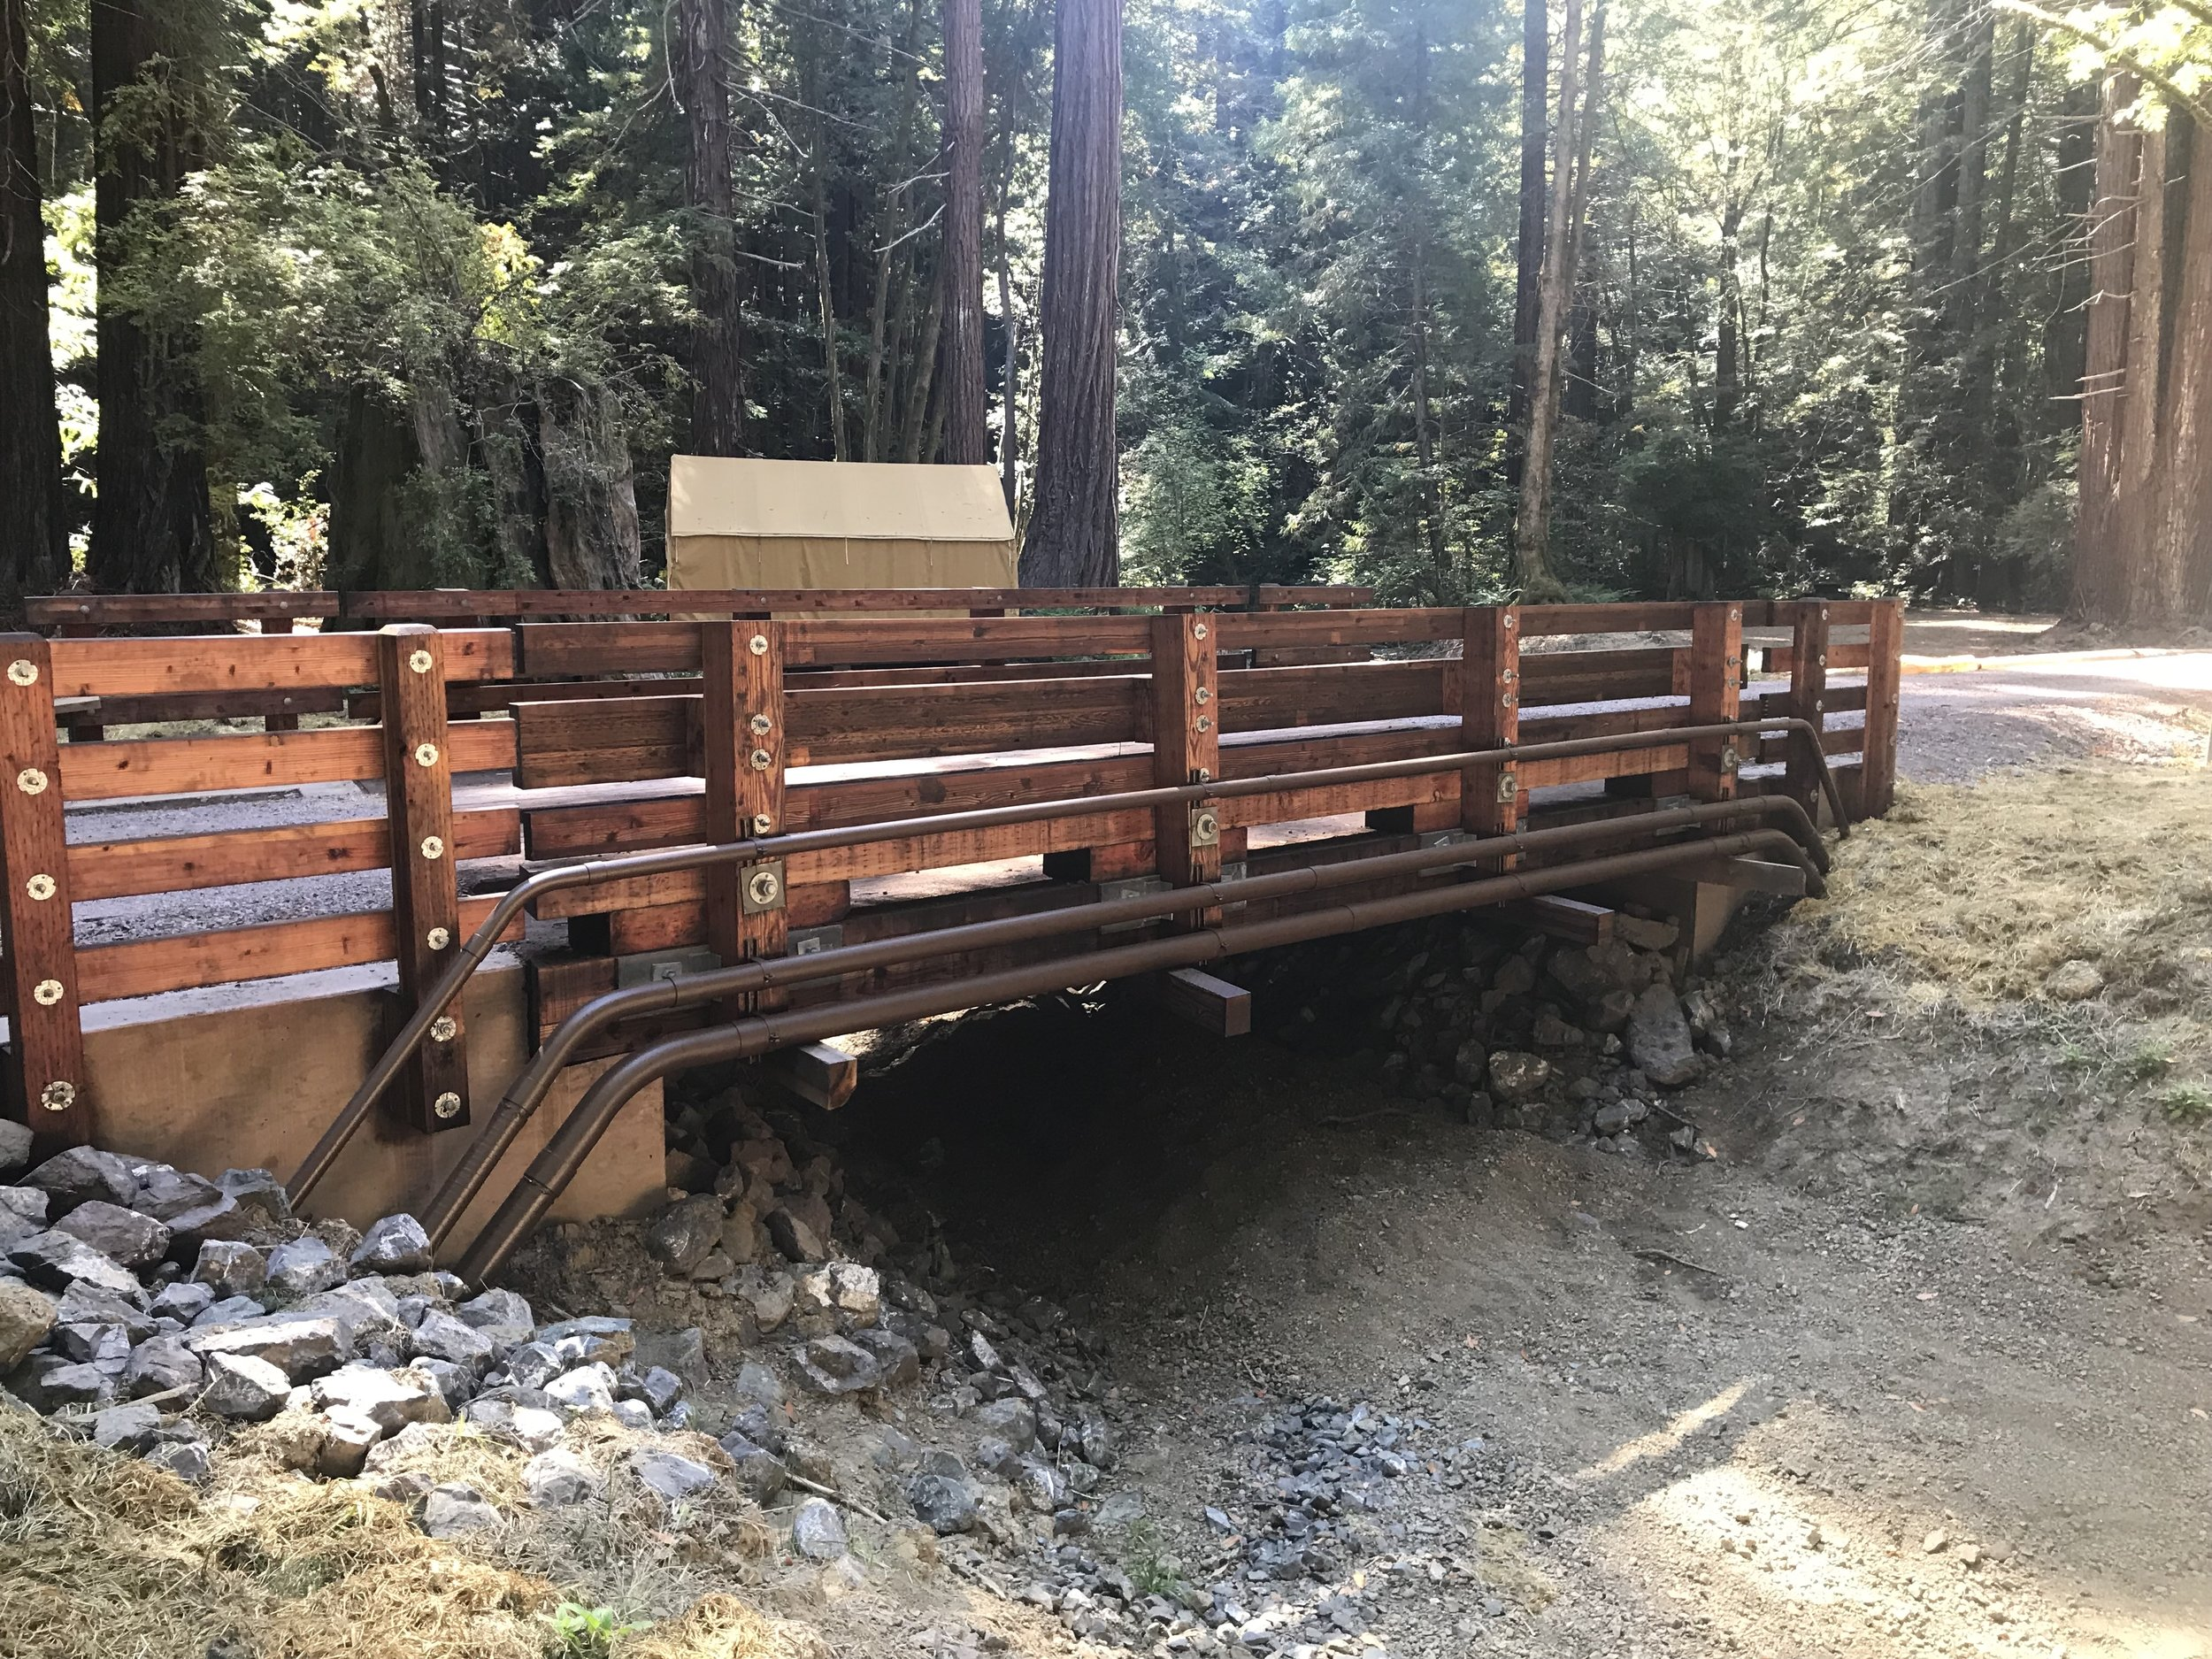 Bridge built over Manly Gulch